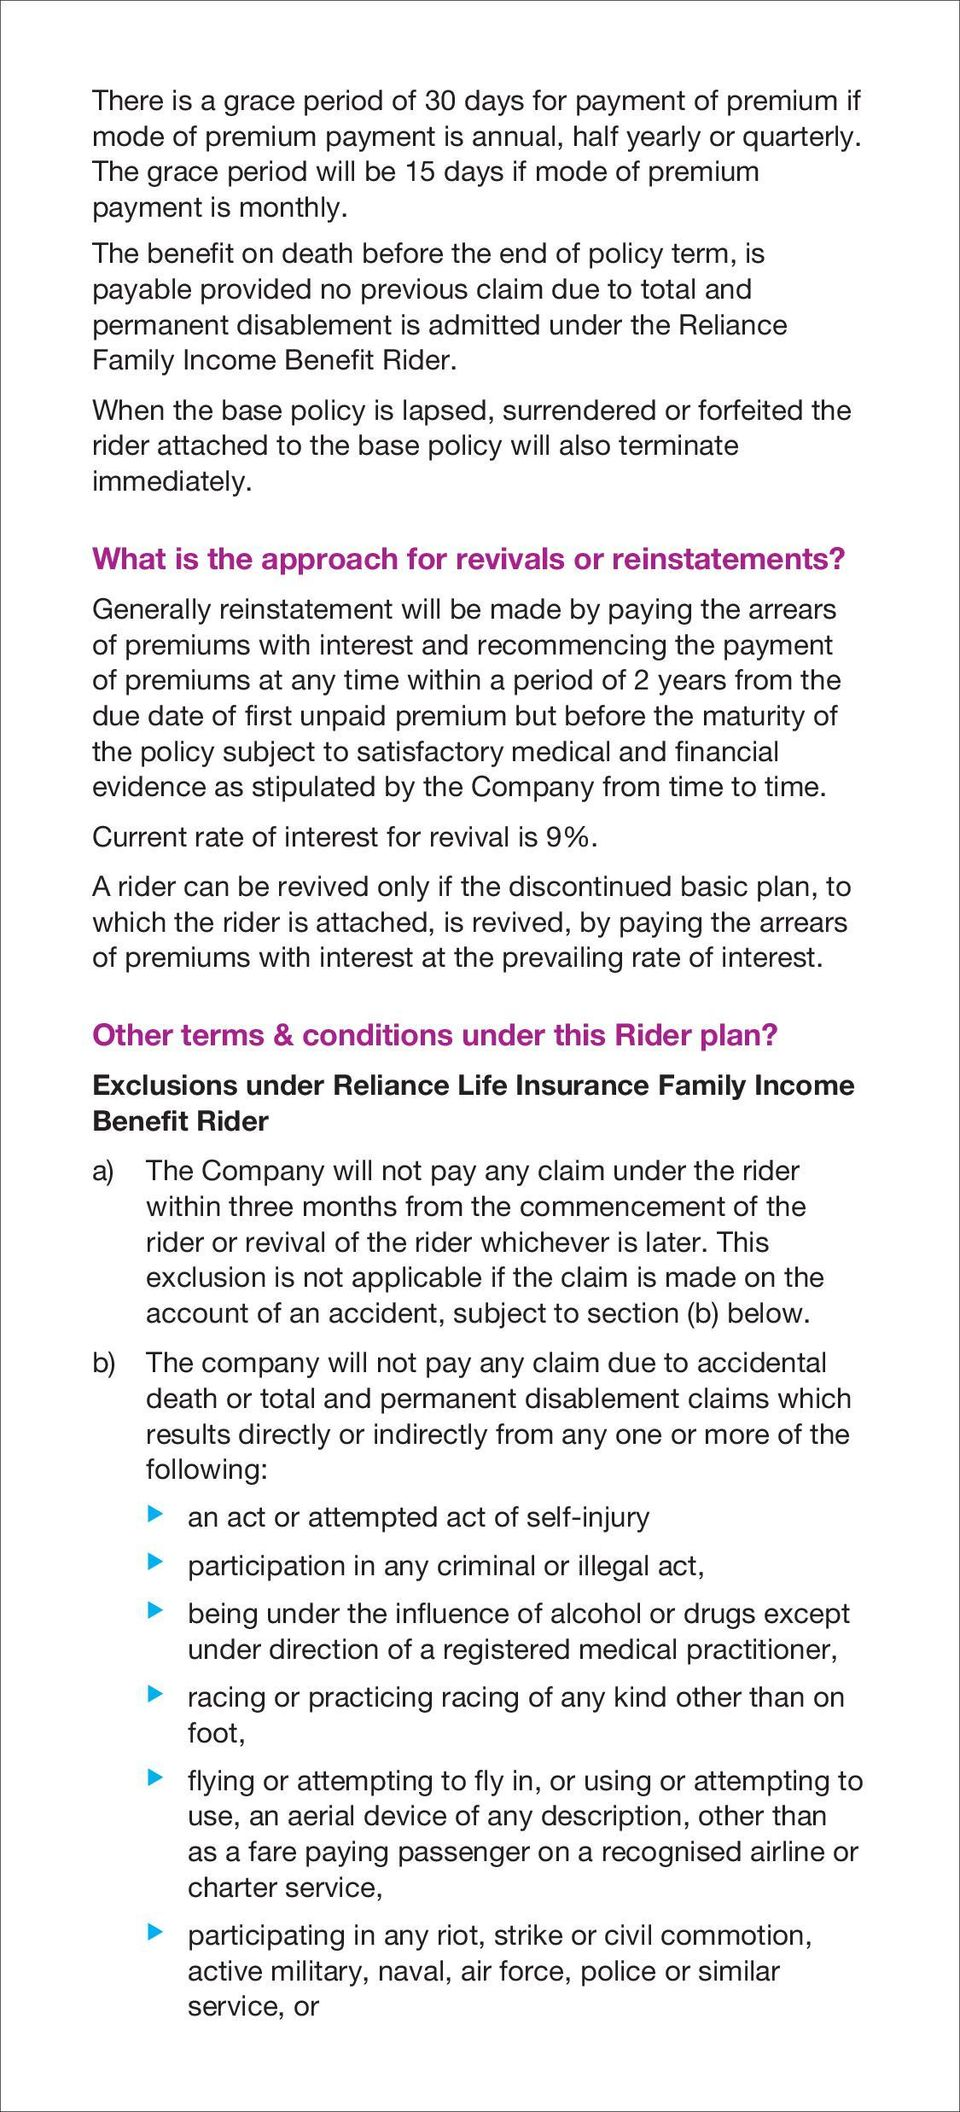 When the base policy is lapsed, surrendered or forfeited the rider attached to the base policy will also terminate immediately. What is the approach for revivals or reinstatements?